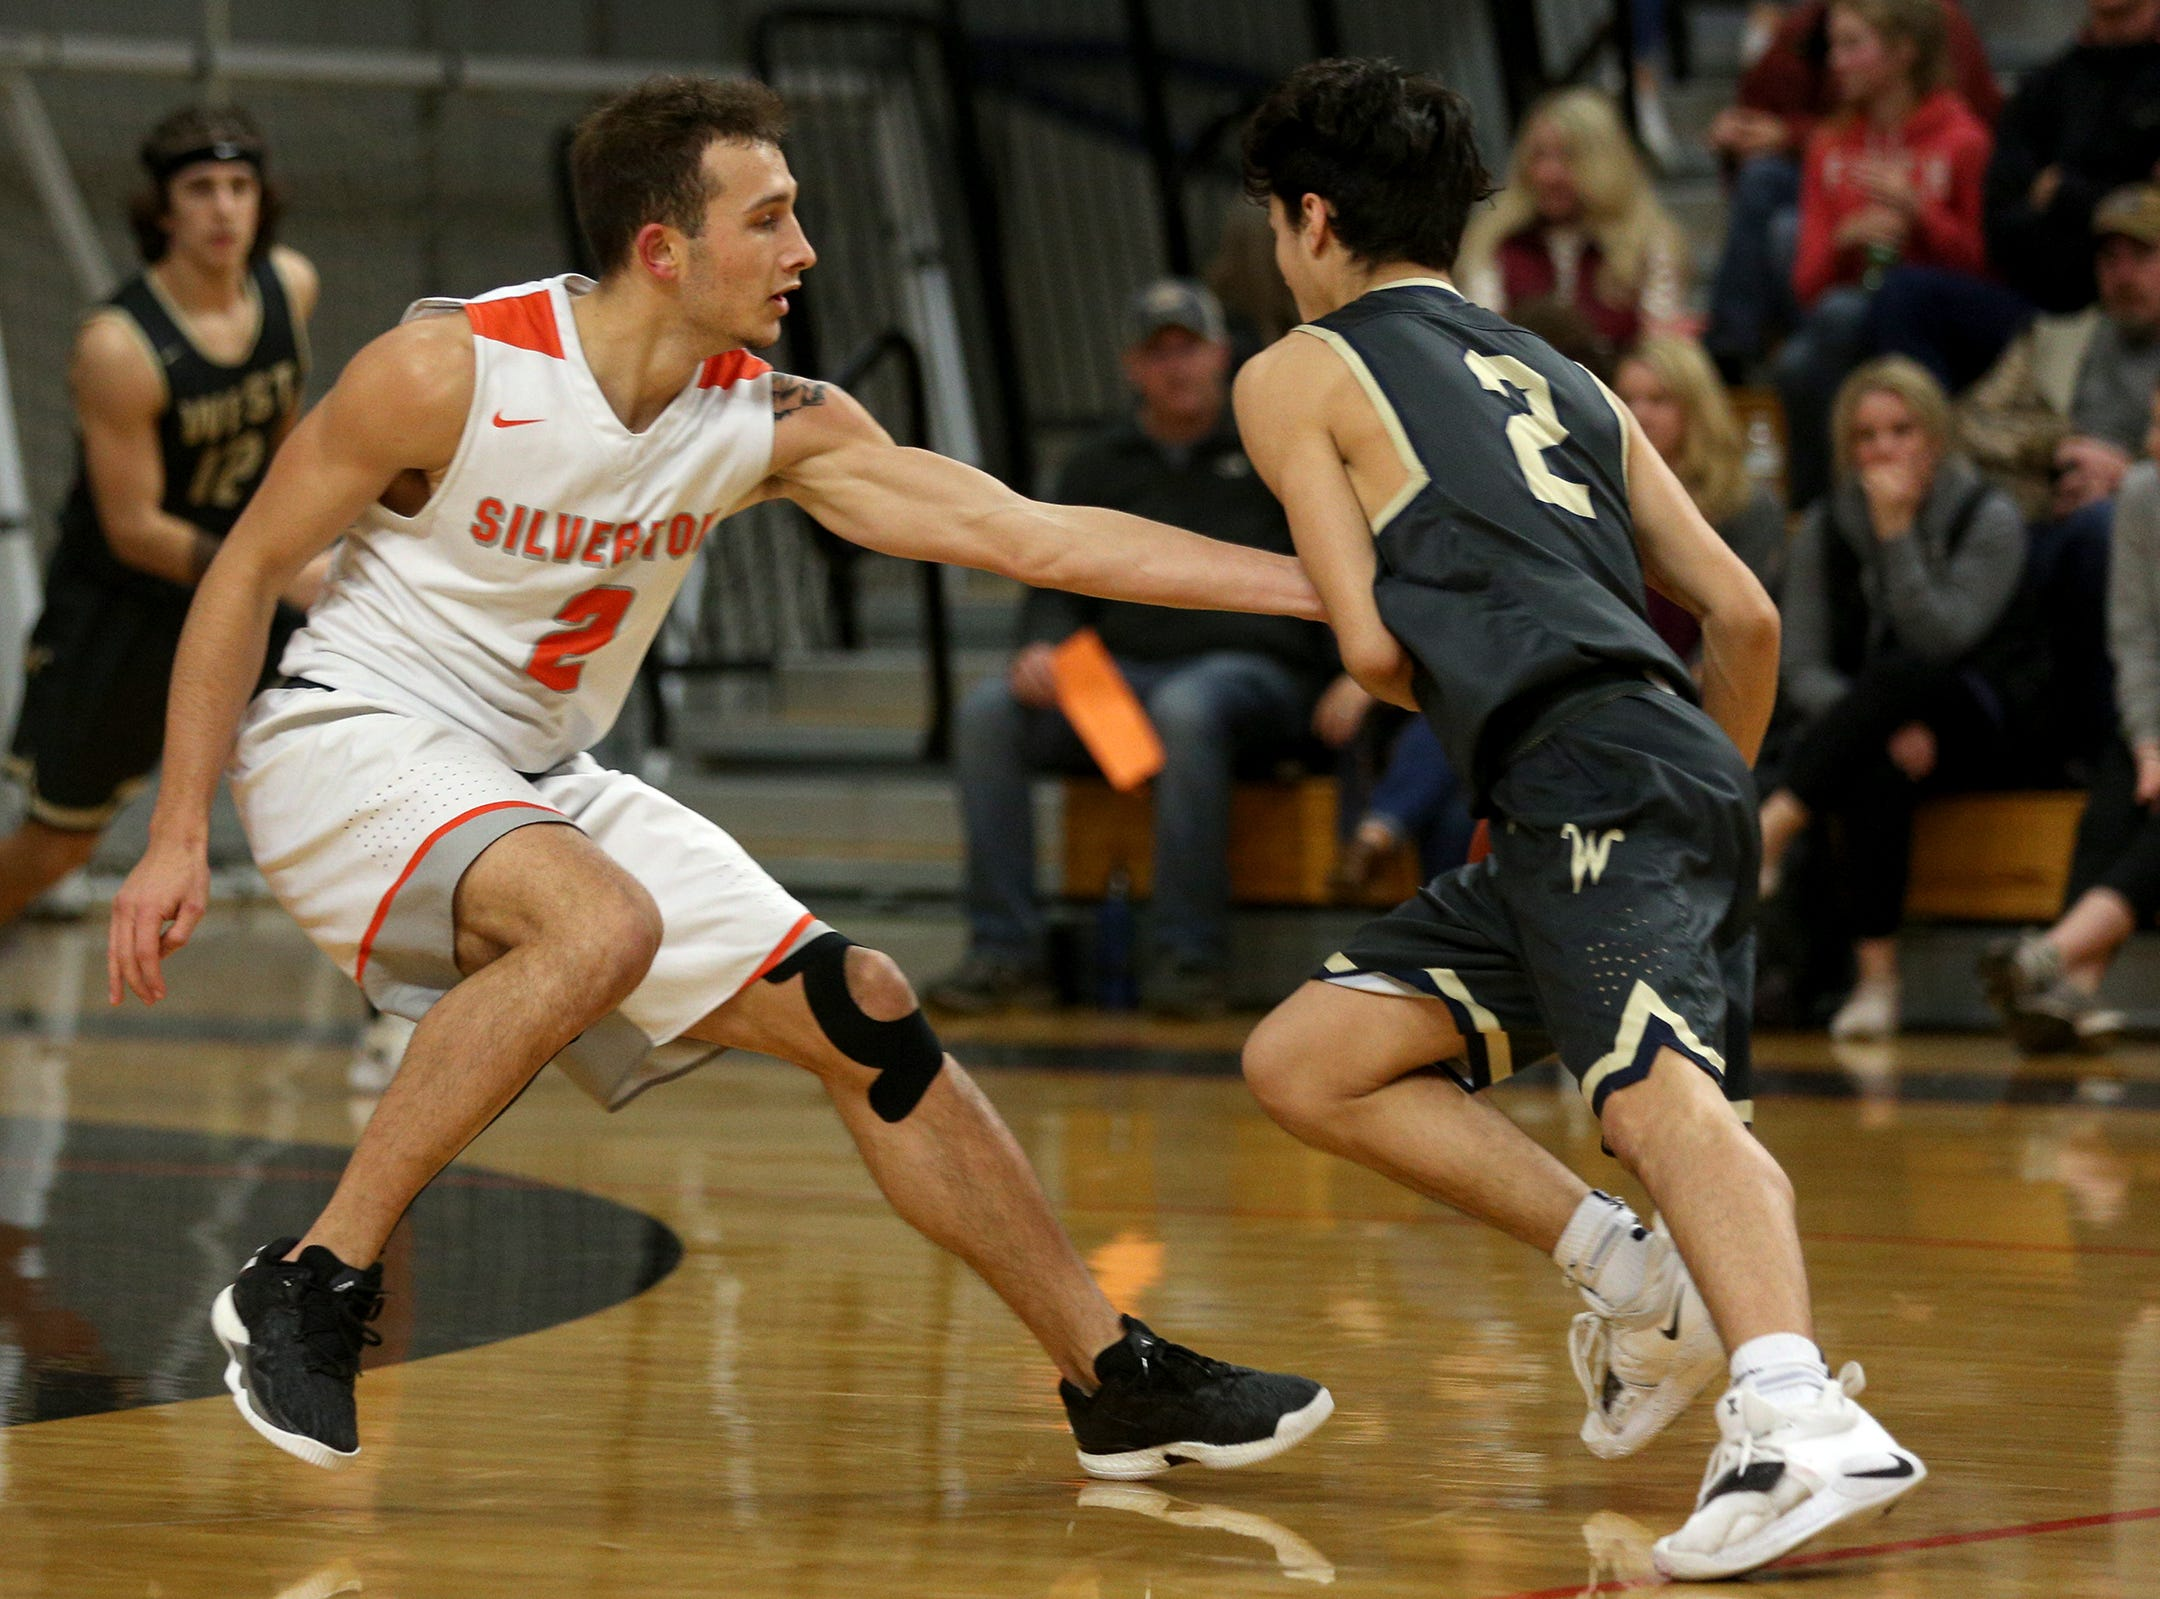 Slverton's Jonah Downey (2) attempts a steal during the West Albany vs. Silverton High School boys basketball game in Silverton on Friday, Jan. 25, 2019.